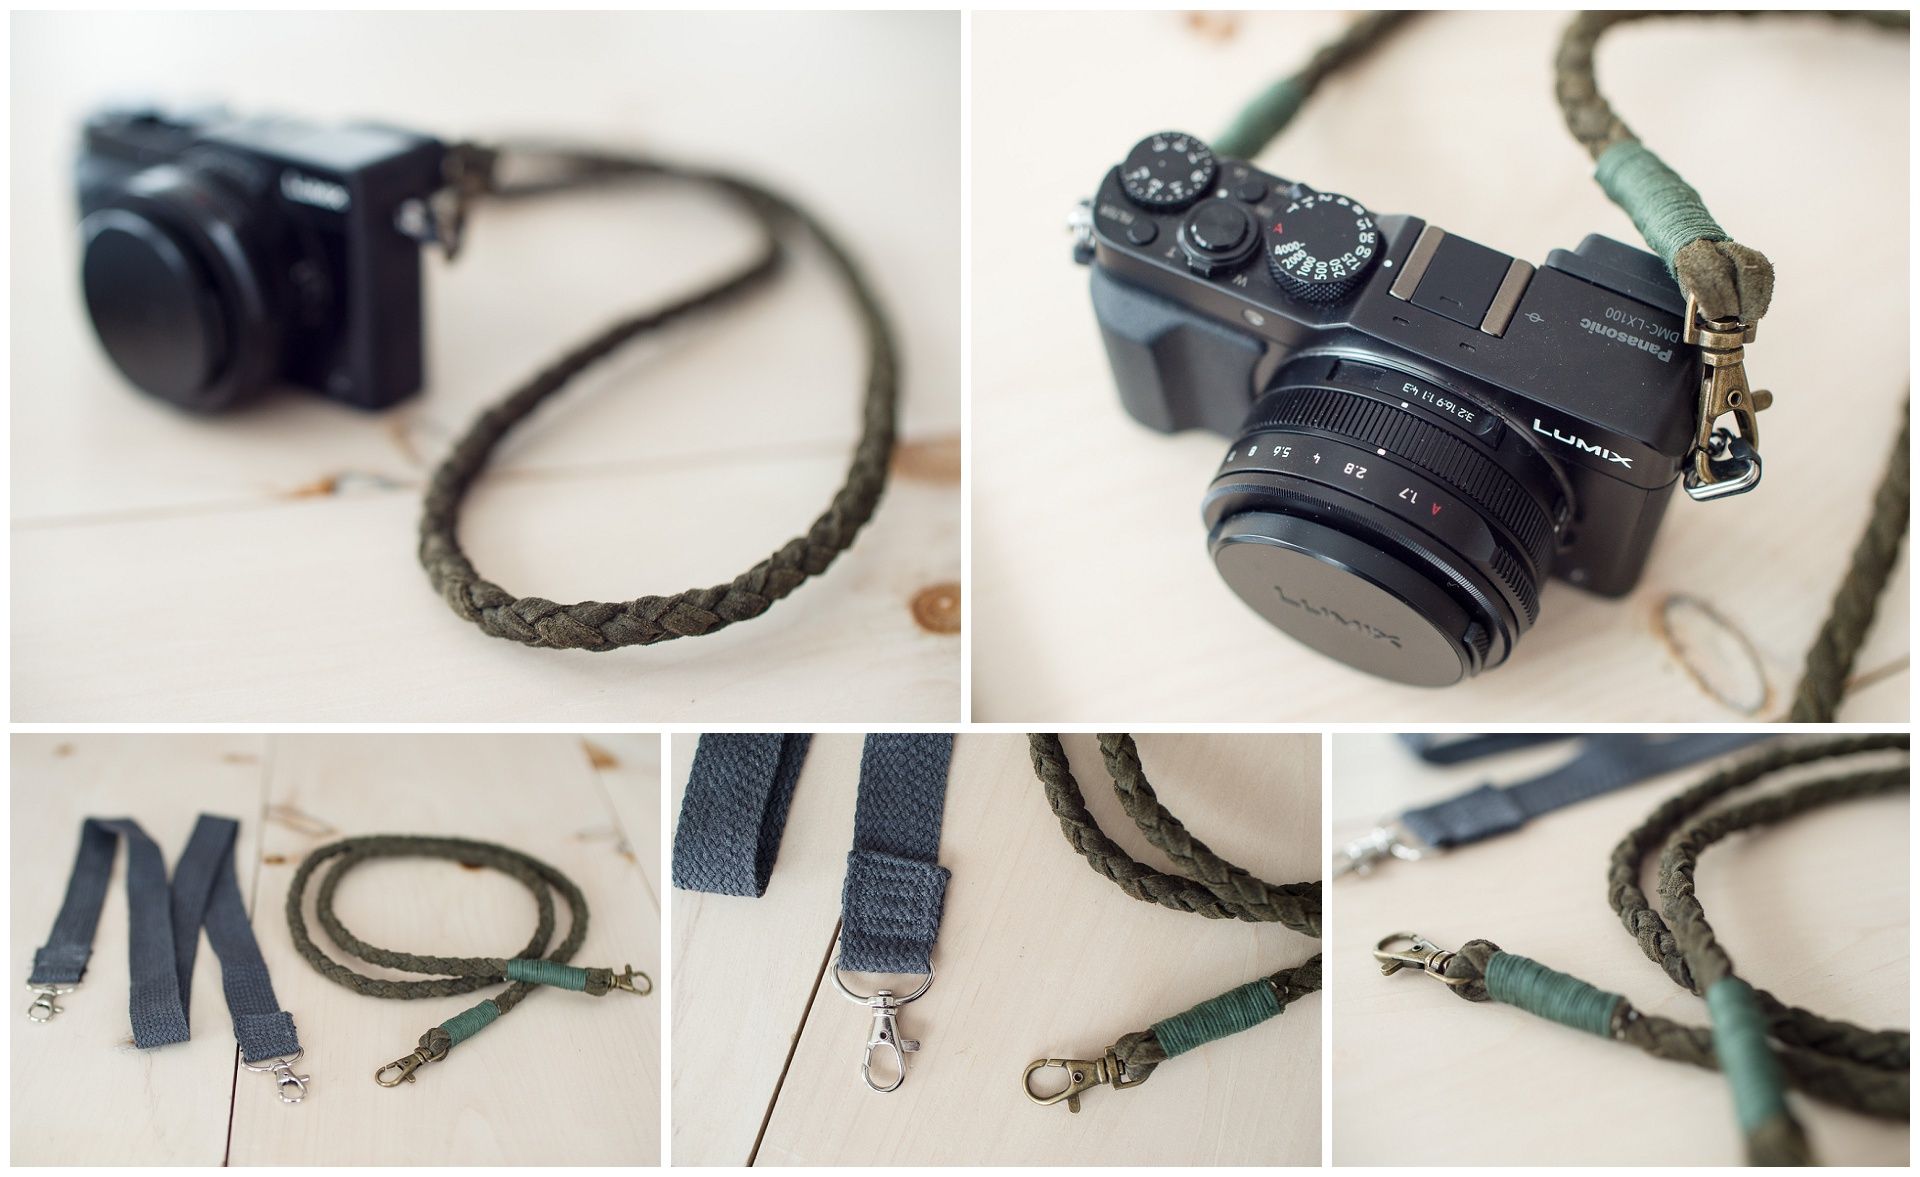 The two camera straps I made last friday :)